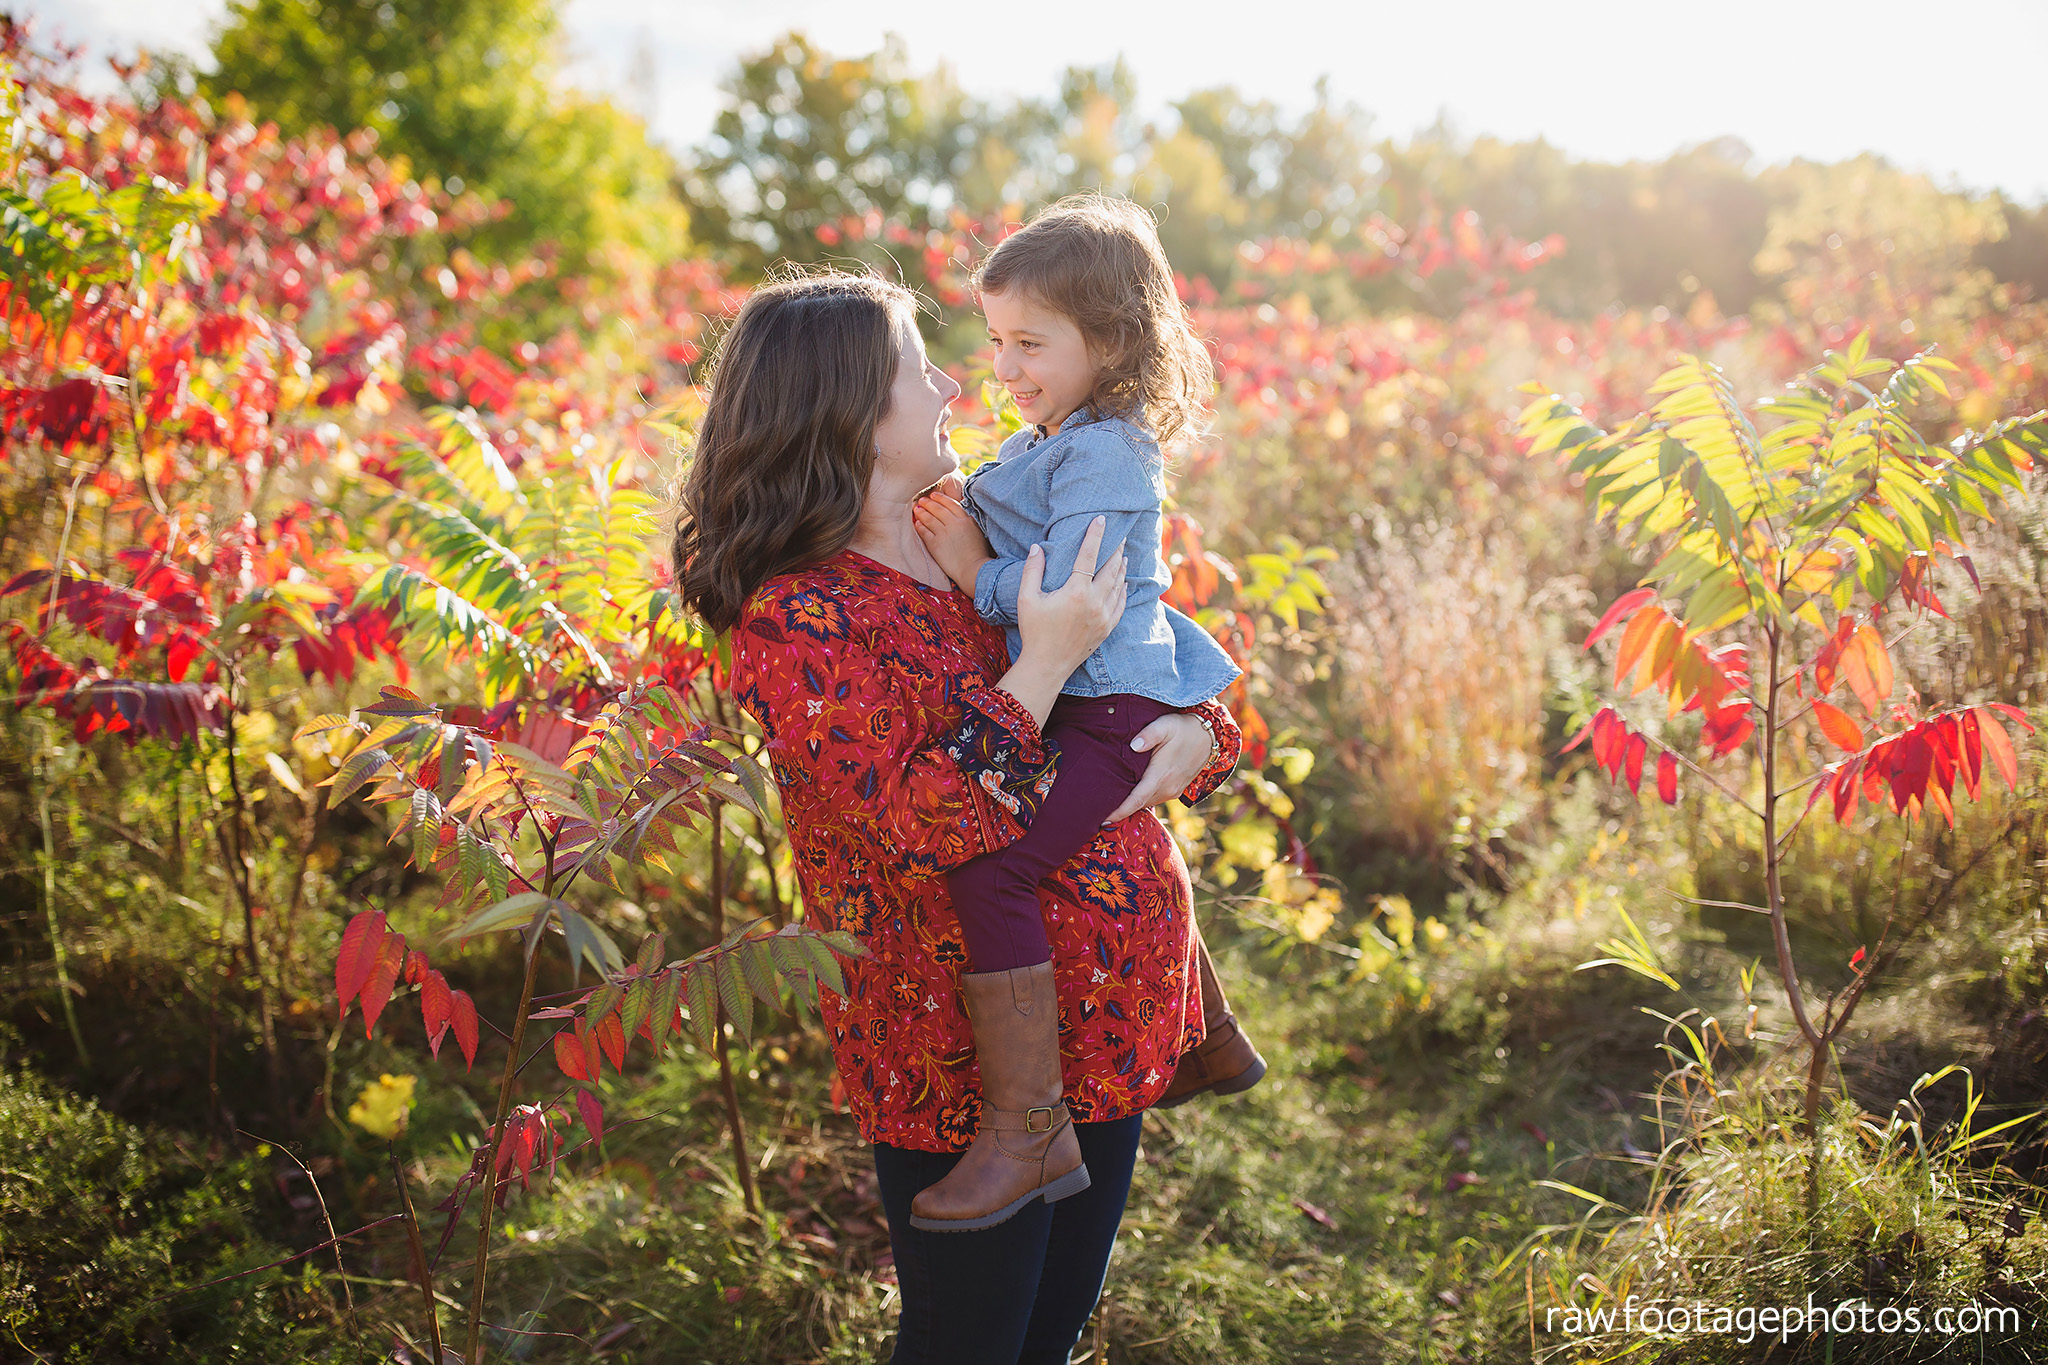 london_ontario_family_photographer-golden_hour_maternity_session-raw_footage_photography009.jpg